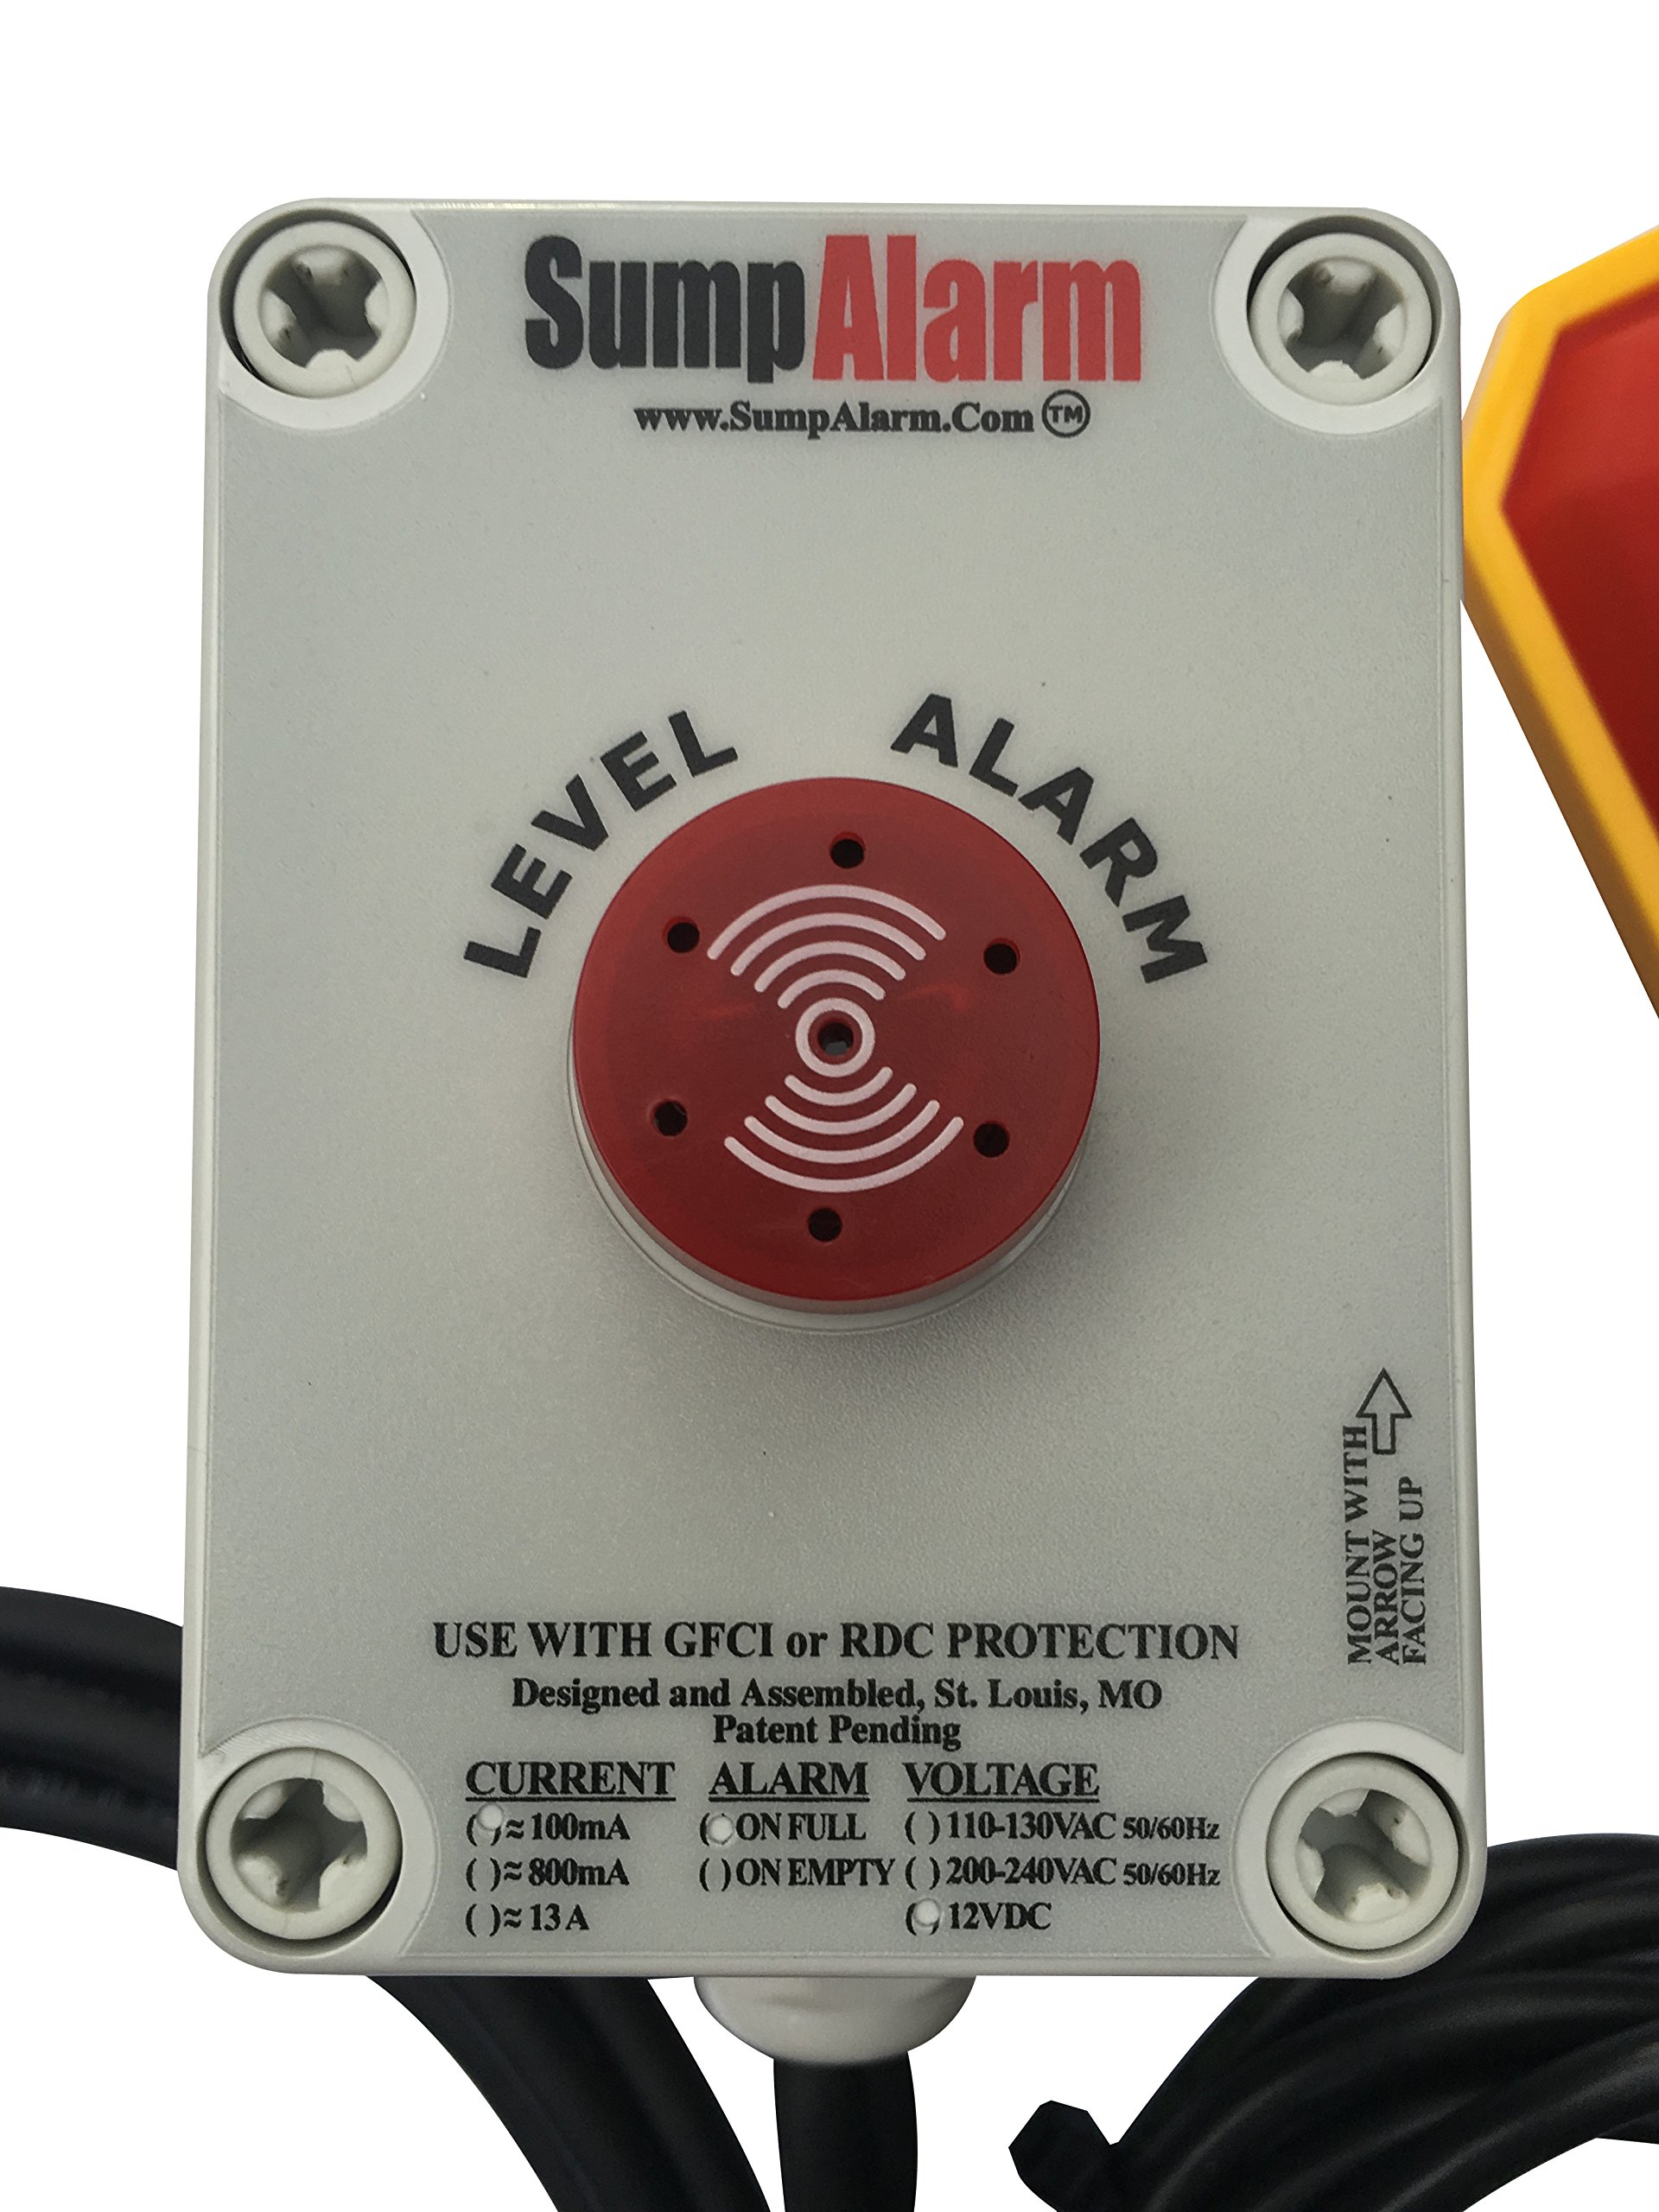 Back Up Battery 12V DC In/Outdoor High Water Alarm for DC / Battery Back-up Septic / Sump / Pond Pumps by Sump Alarm